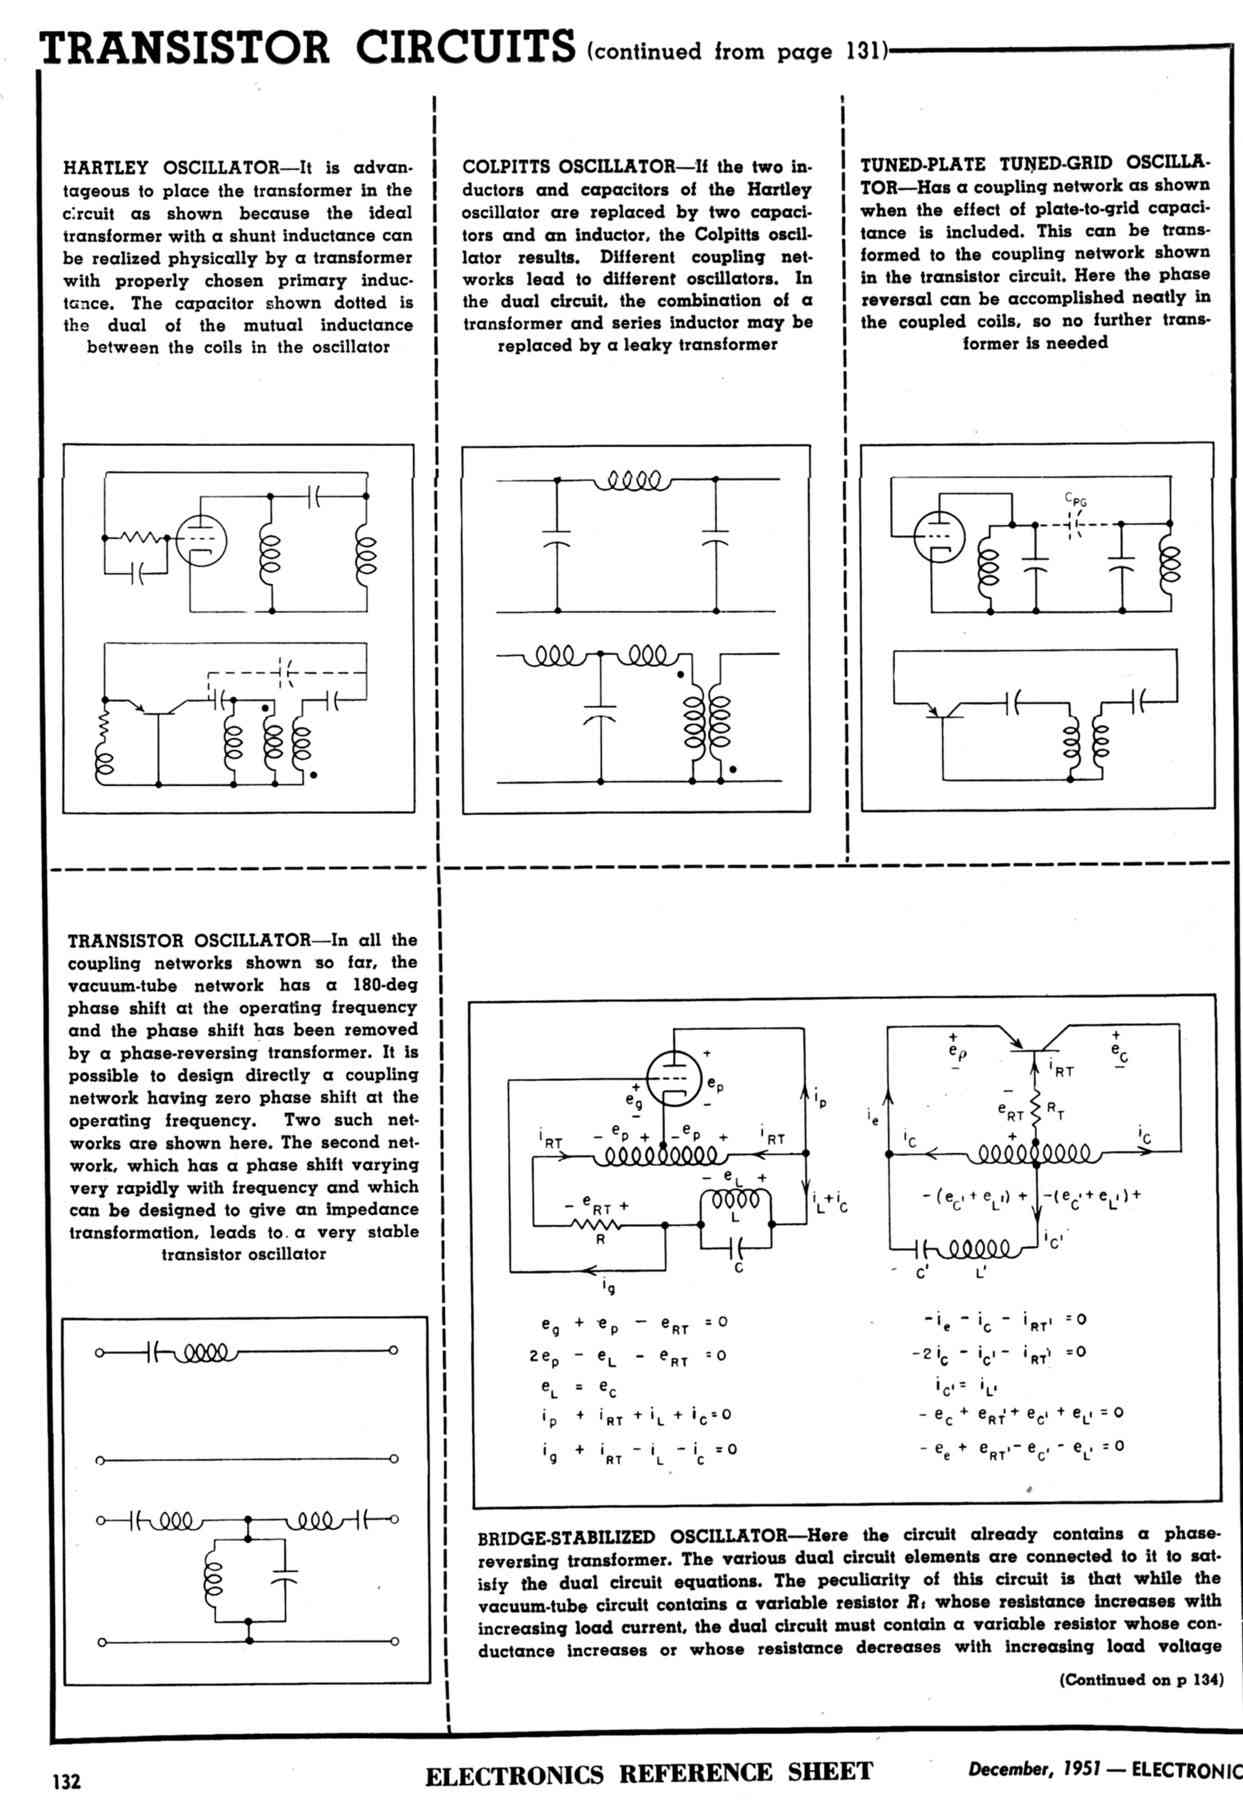 Early Transistor Days Oscillatorcircuit Theoscillatorusingfettubeandtransistorhtml Editors Interviewed About Pricing And Availability Of Transistors The Six Larger